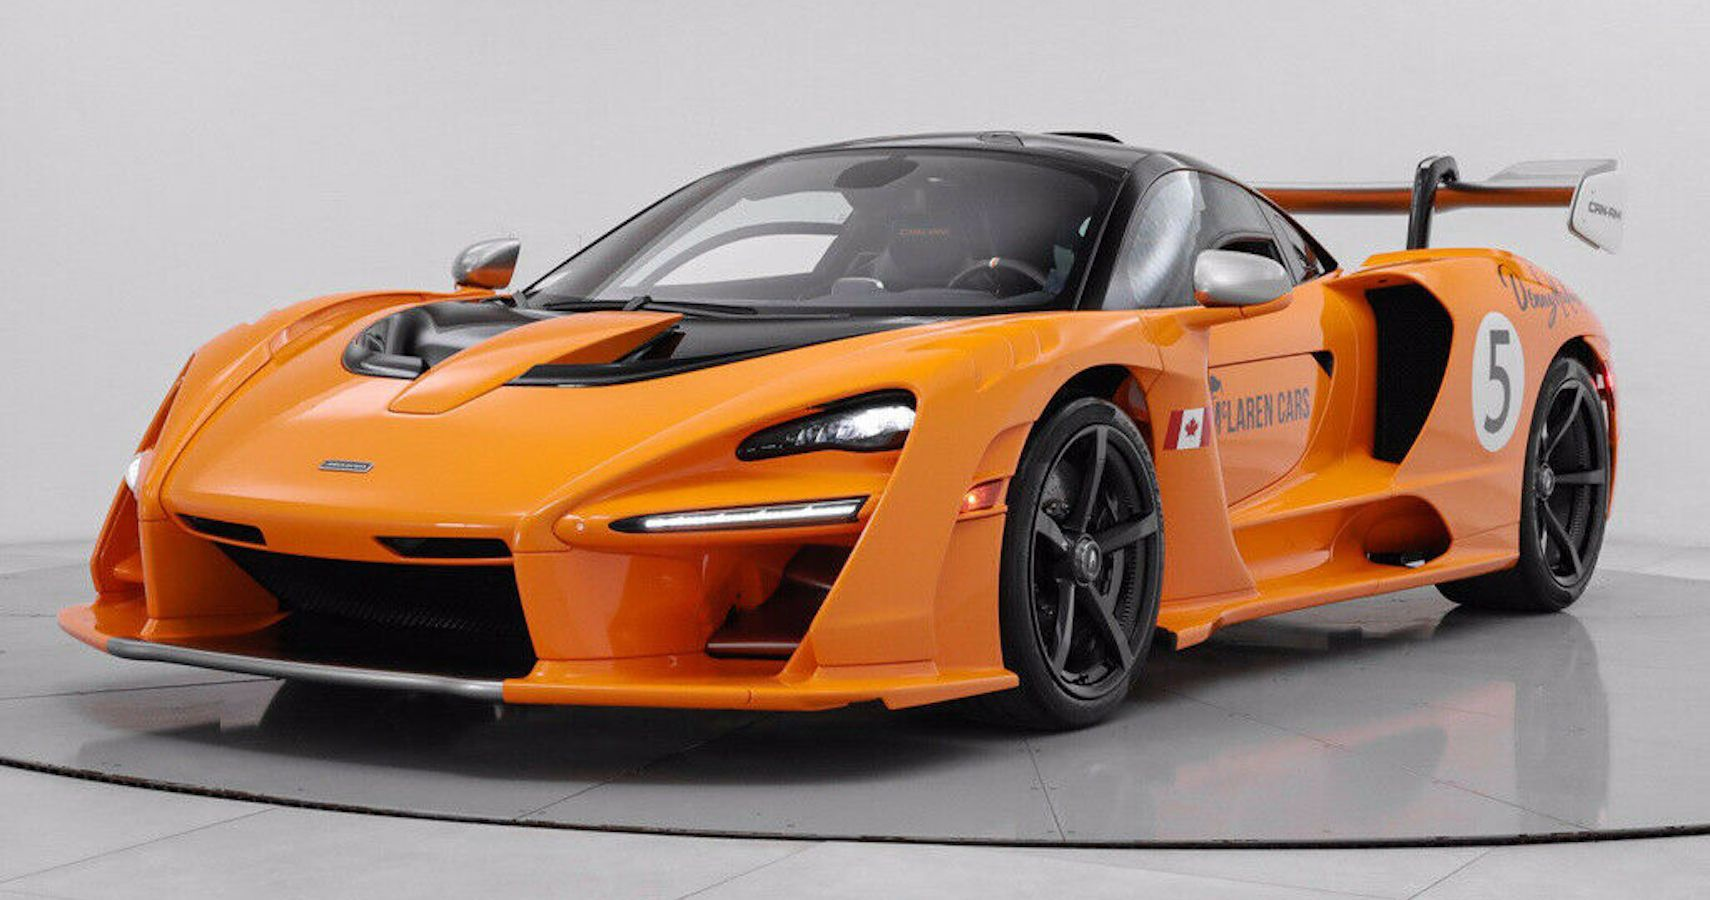 Stunning McLaren Senna Can-Am Listed For Sale At $3.3 Million